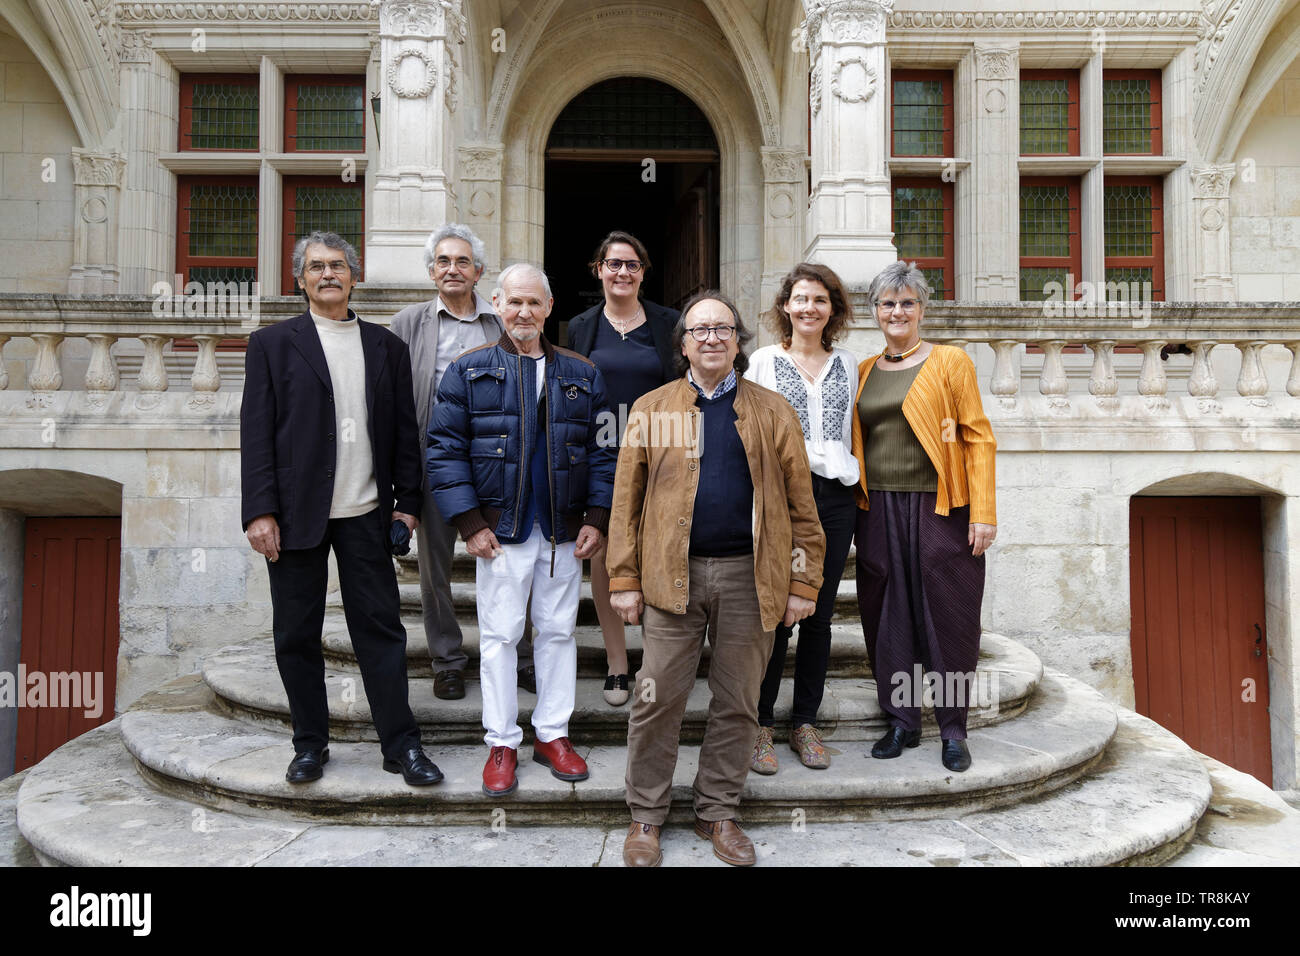 Tours, France.24th May,2019.Artists & S. Capazza(R) & L.Capazza (C)at Exhibition Re-naissance(s) of the Capazza Gallery ©:VPhitoussi/Alamy Stock Photo - Stock Image